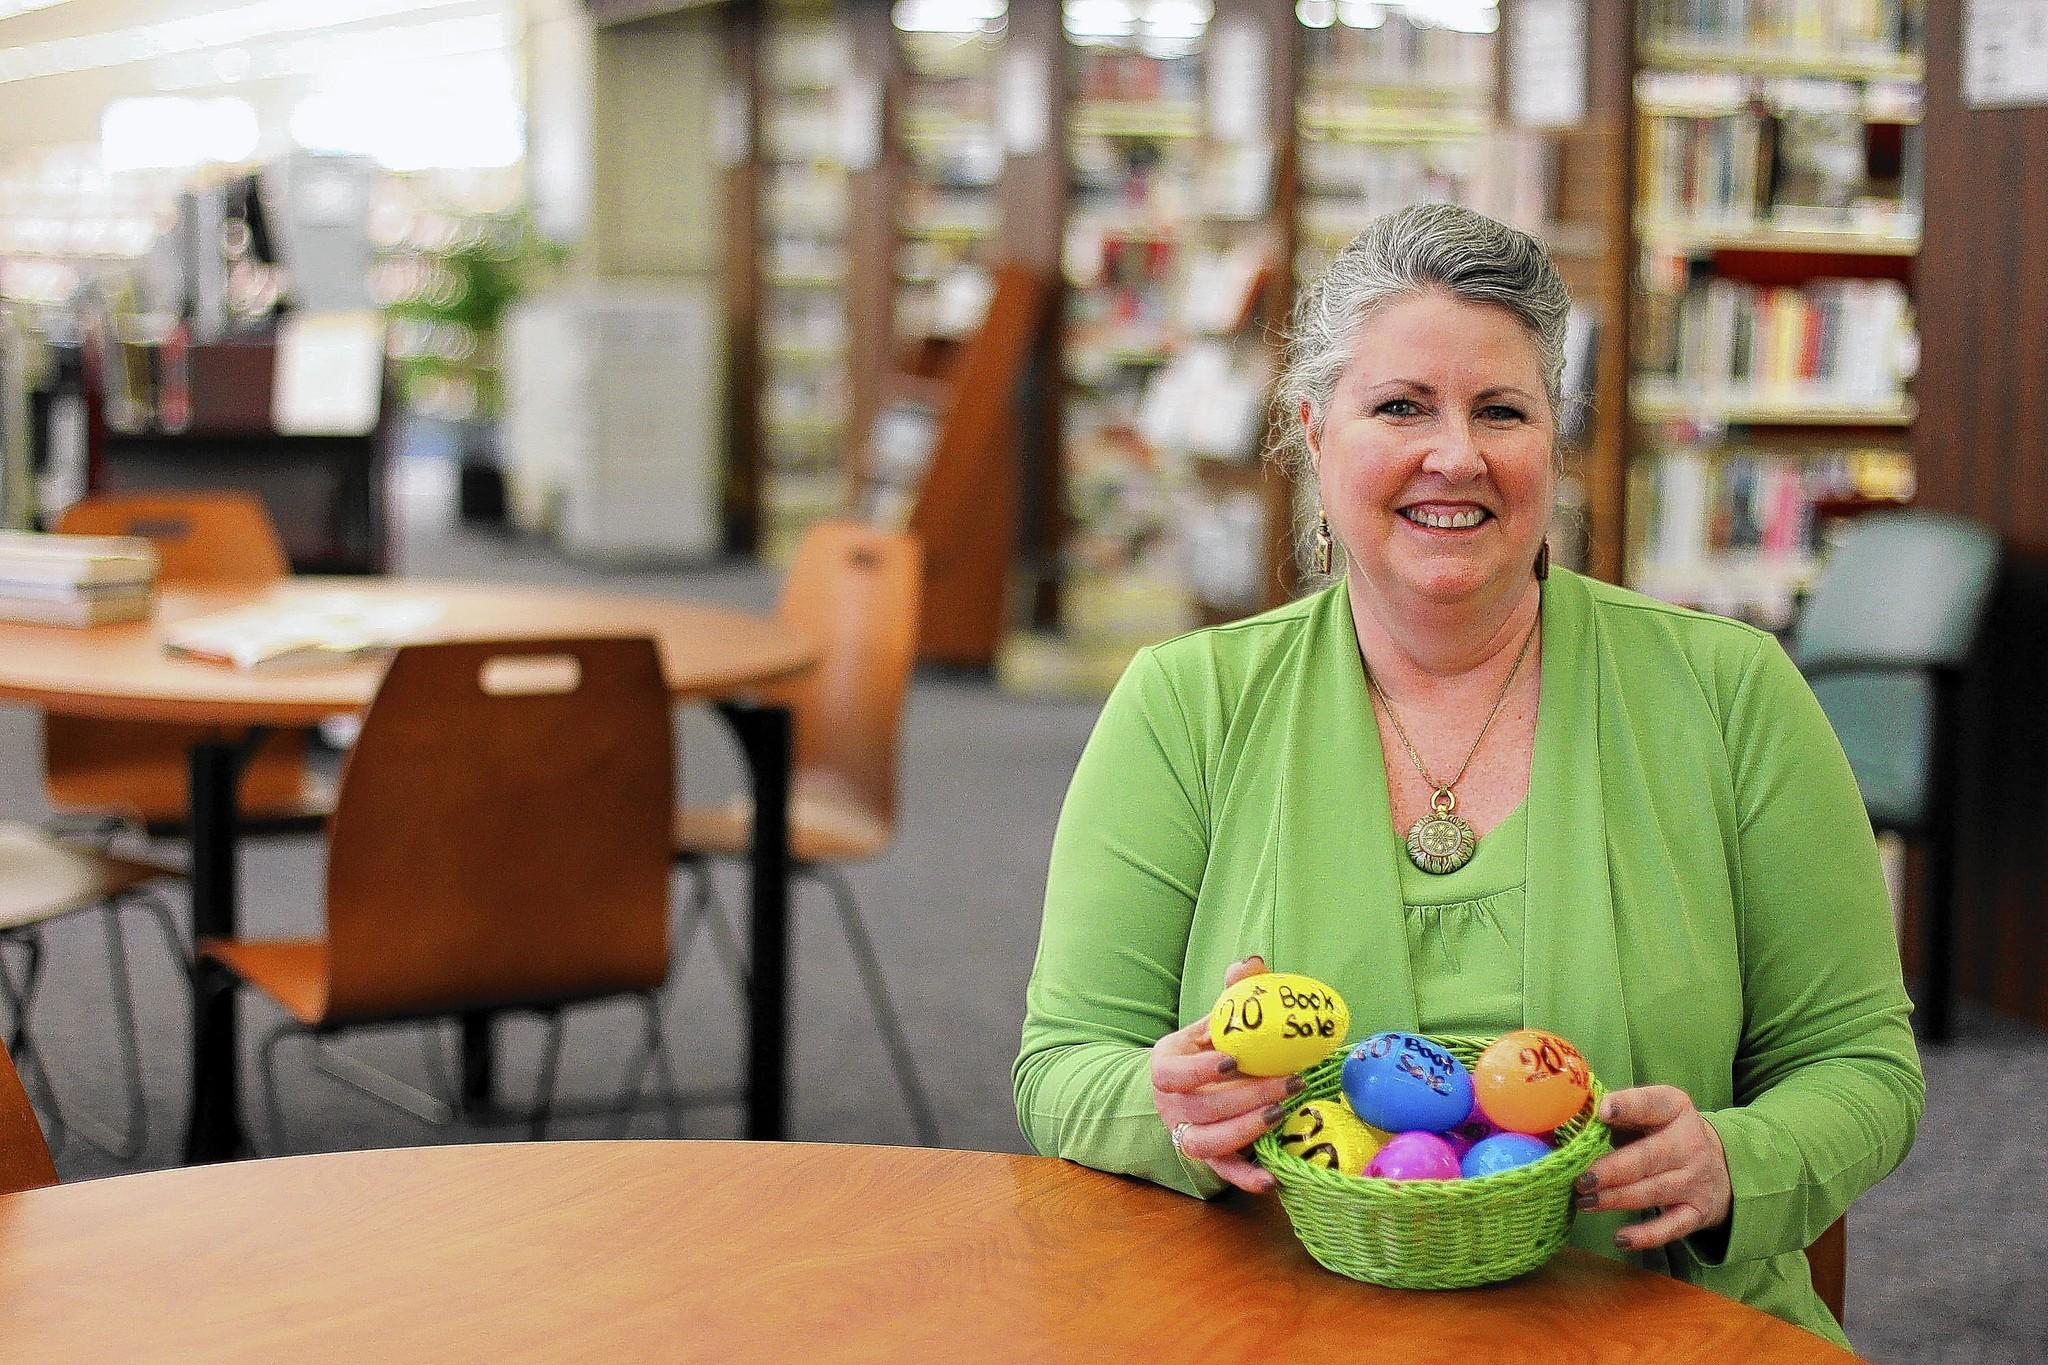 Friends of the Towson Library volunteer and coordinator of business memberships Judy Gregory poses for a photo with a basket of plastic eggs that will be hidden throughout the library and entitles the finder to a free bookduring the Friends of the Towson Library's annual used book sale from April 10-13.